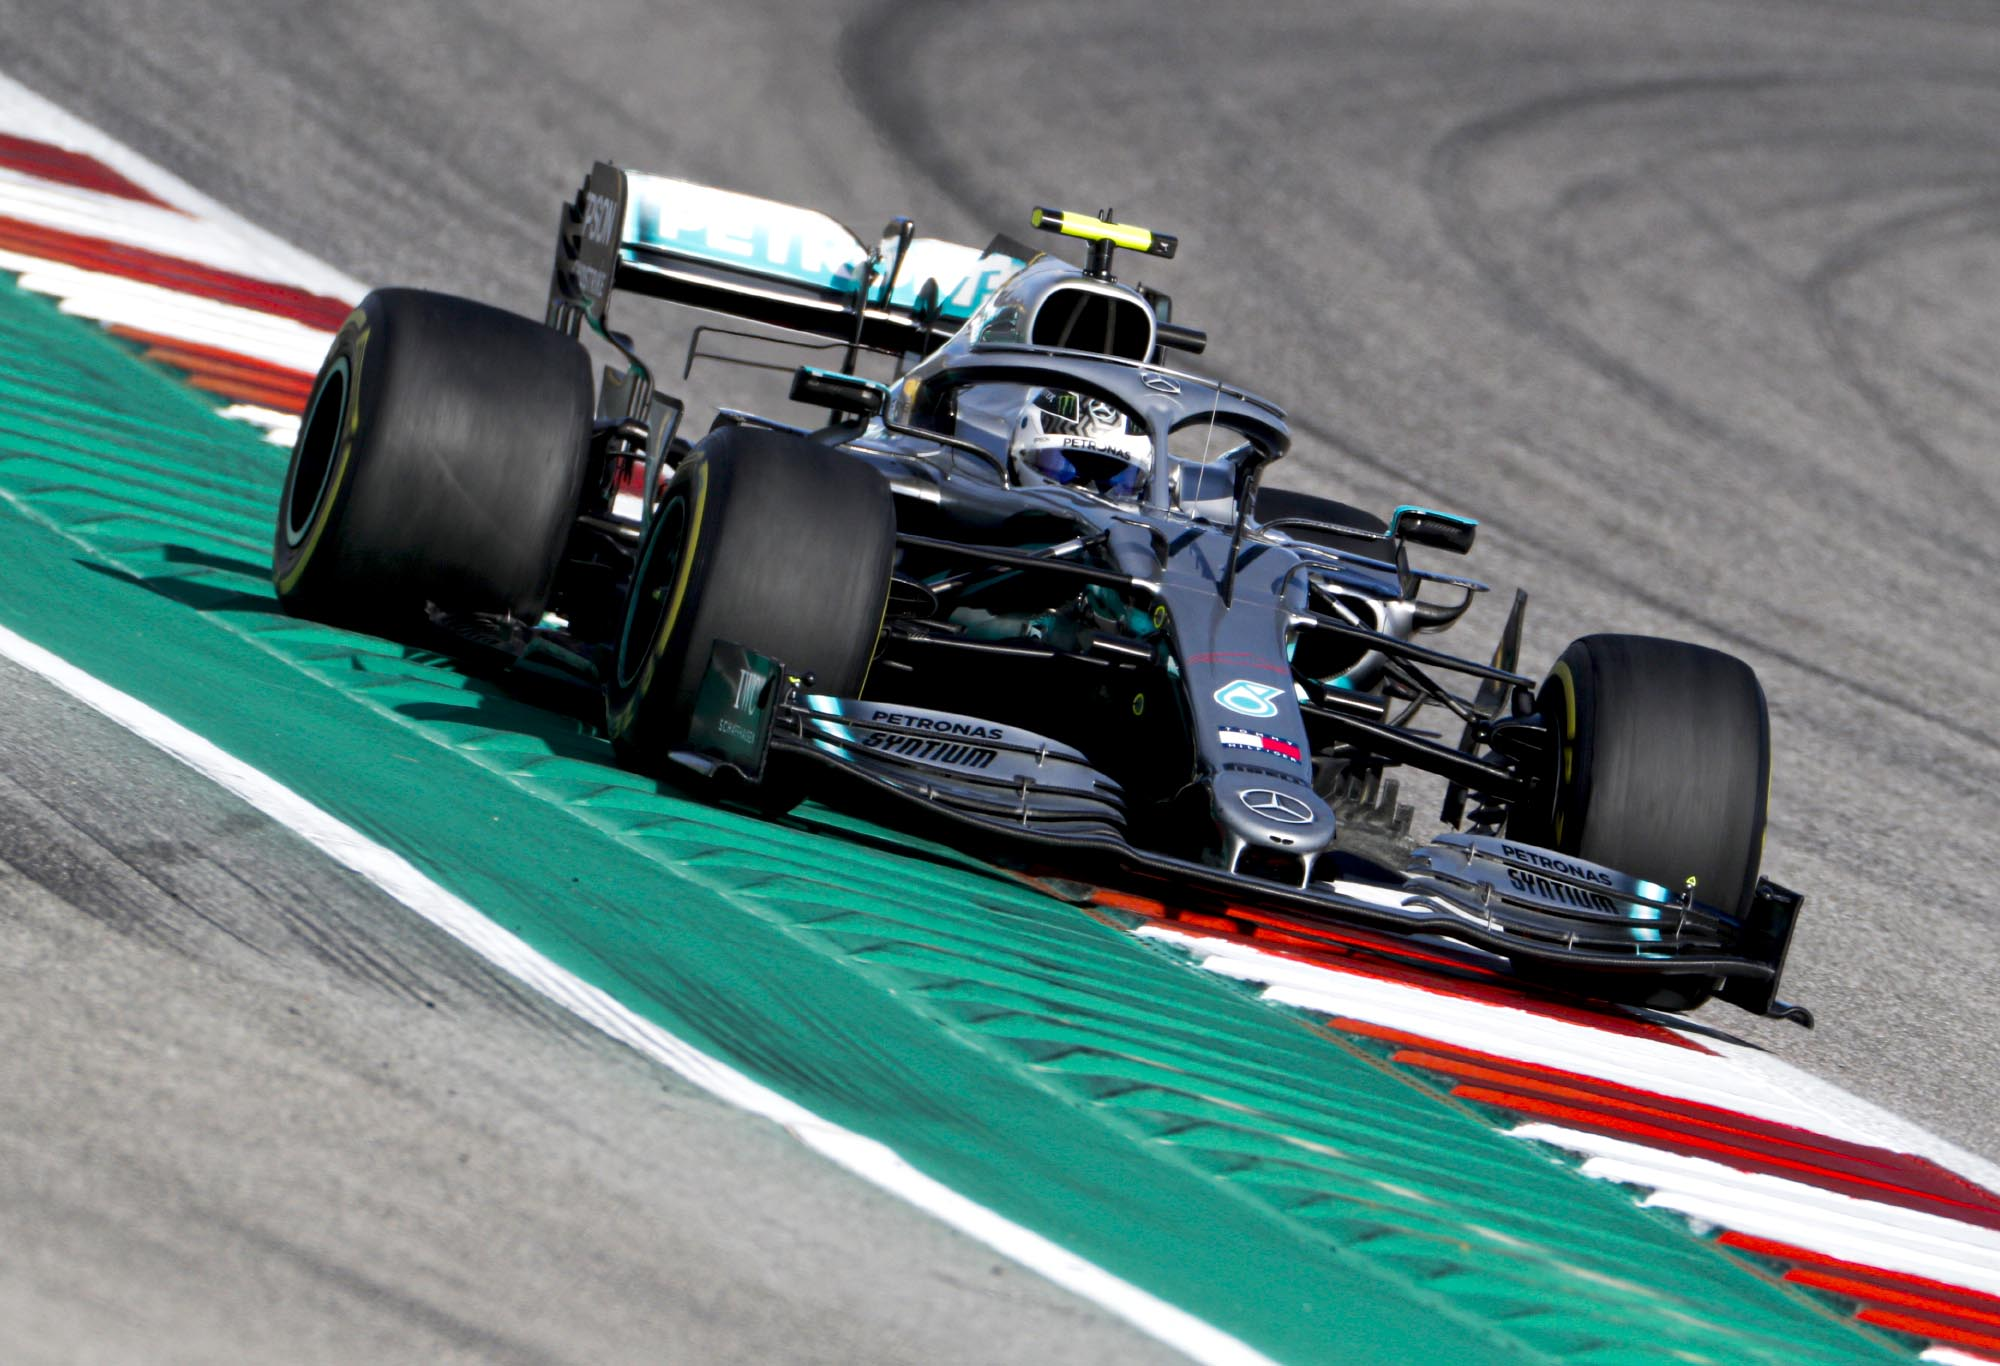 Valtteri Bottas on track at he 2019 United States Grand Prix